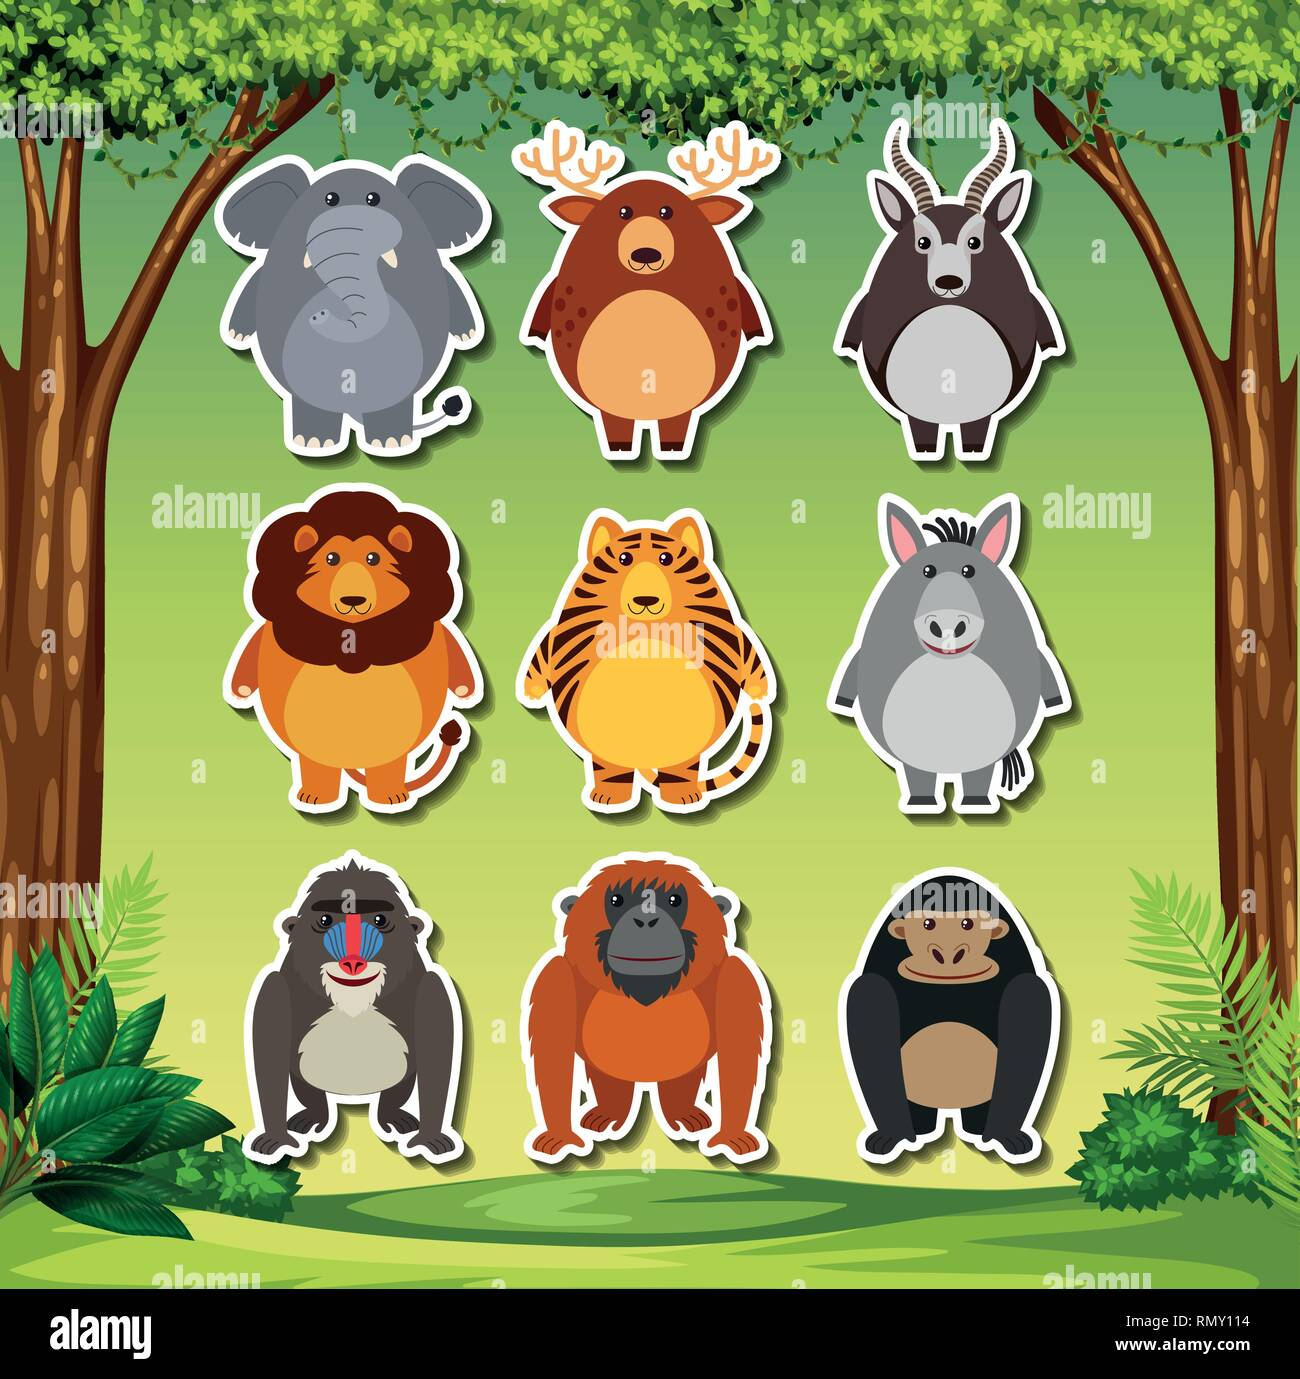 Set of cartoon animal sticker illustration - Stock Image